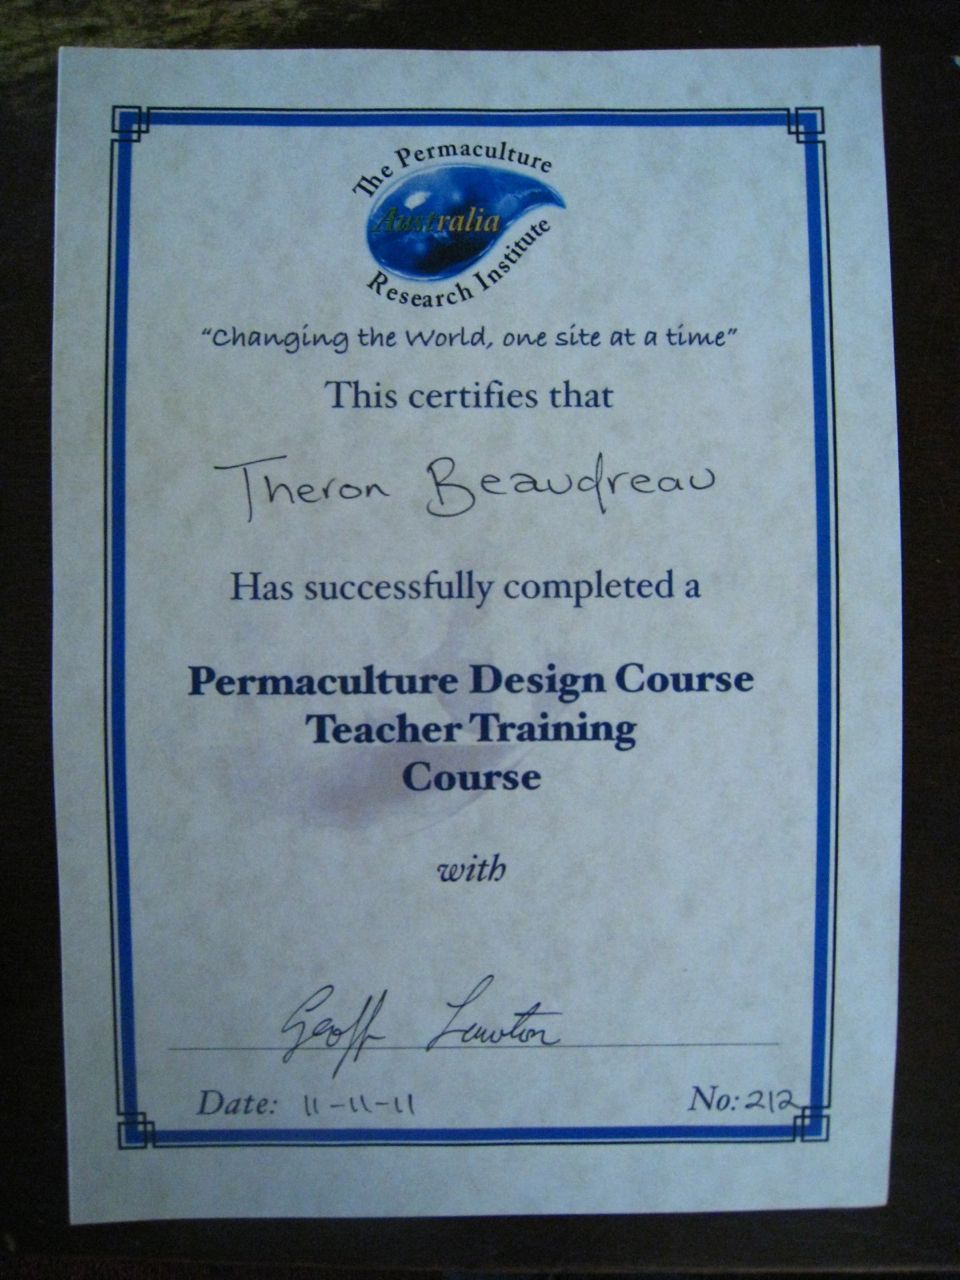 Permaculture Design Course Teacher Training Certificate